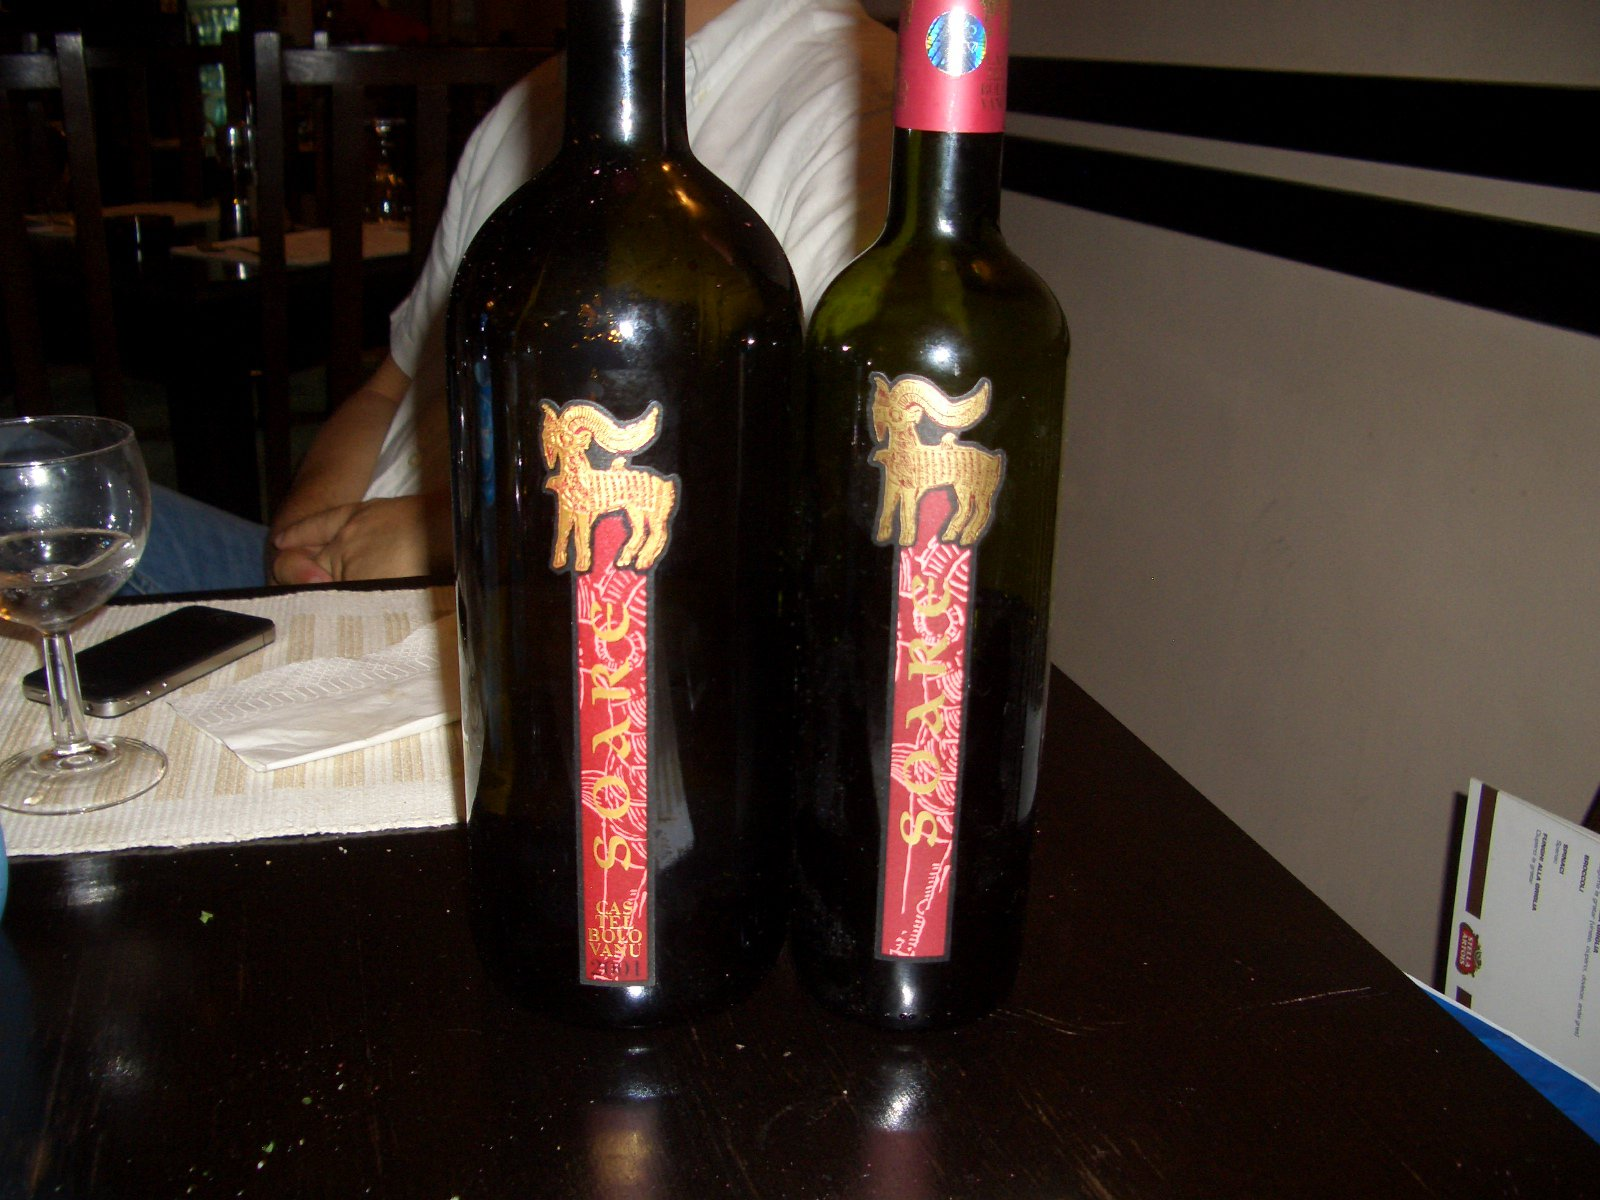 Soare 2001 Vs 2005 By Vinarte From Grapes To Wine